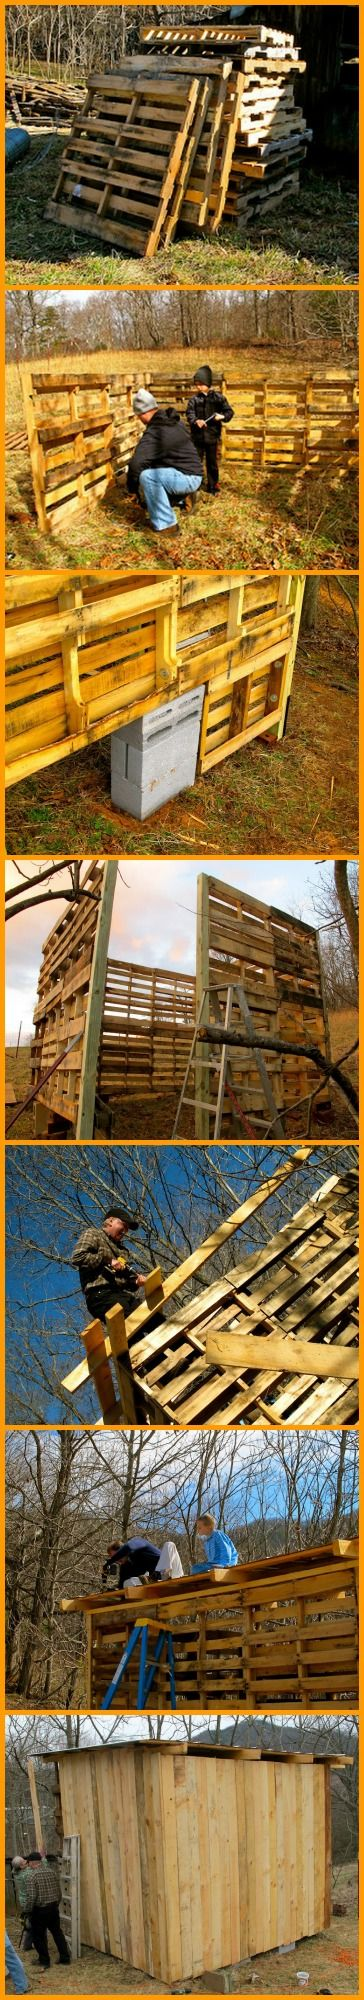 You can build a cheap storage shed or shelter from recycled pallets. View how to do it:   Learn how to make one like these ppl are doing here - http://howtobuildasheddiy.blogspot.co.nz/